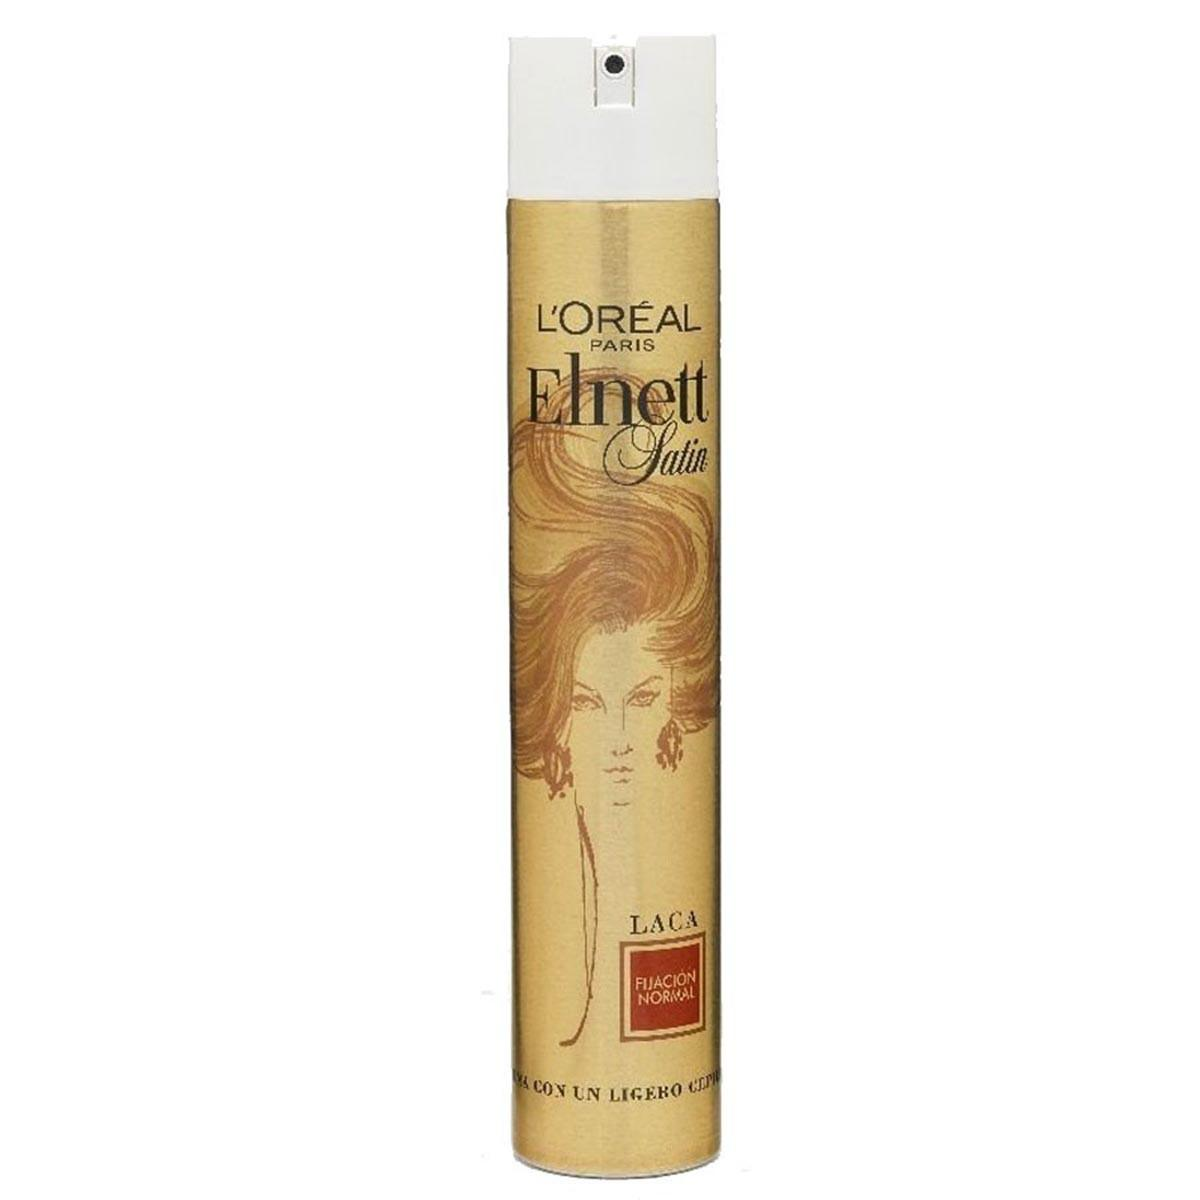 Consumo Elnett Hair Spray Fixation Normal 400 ml I